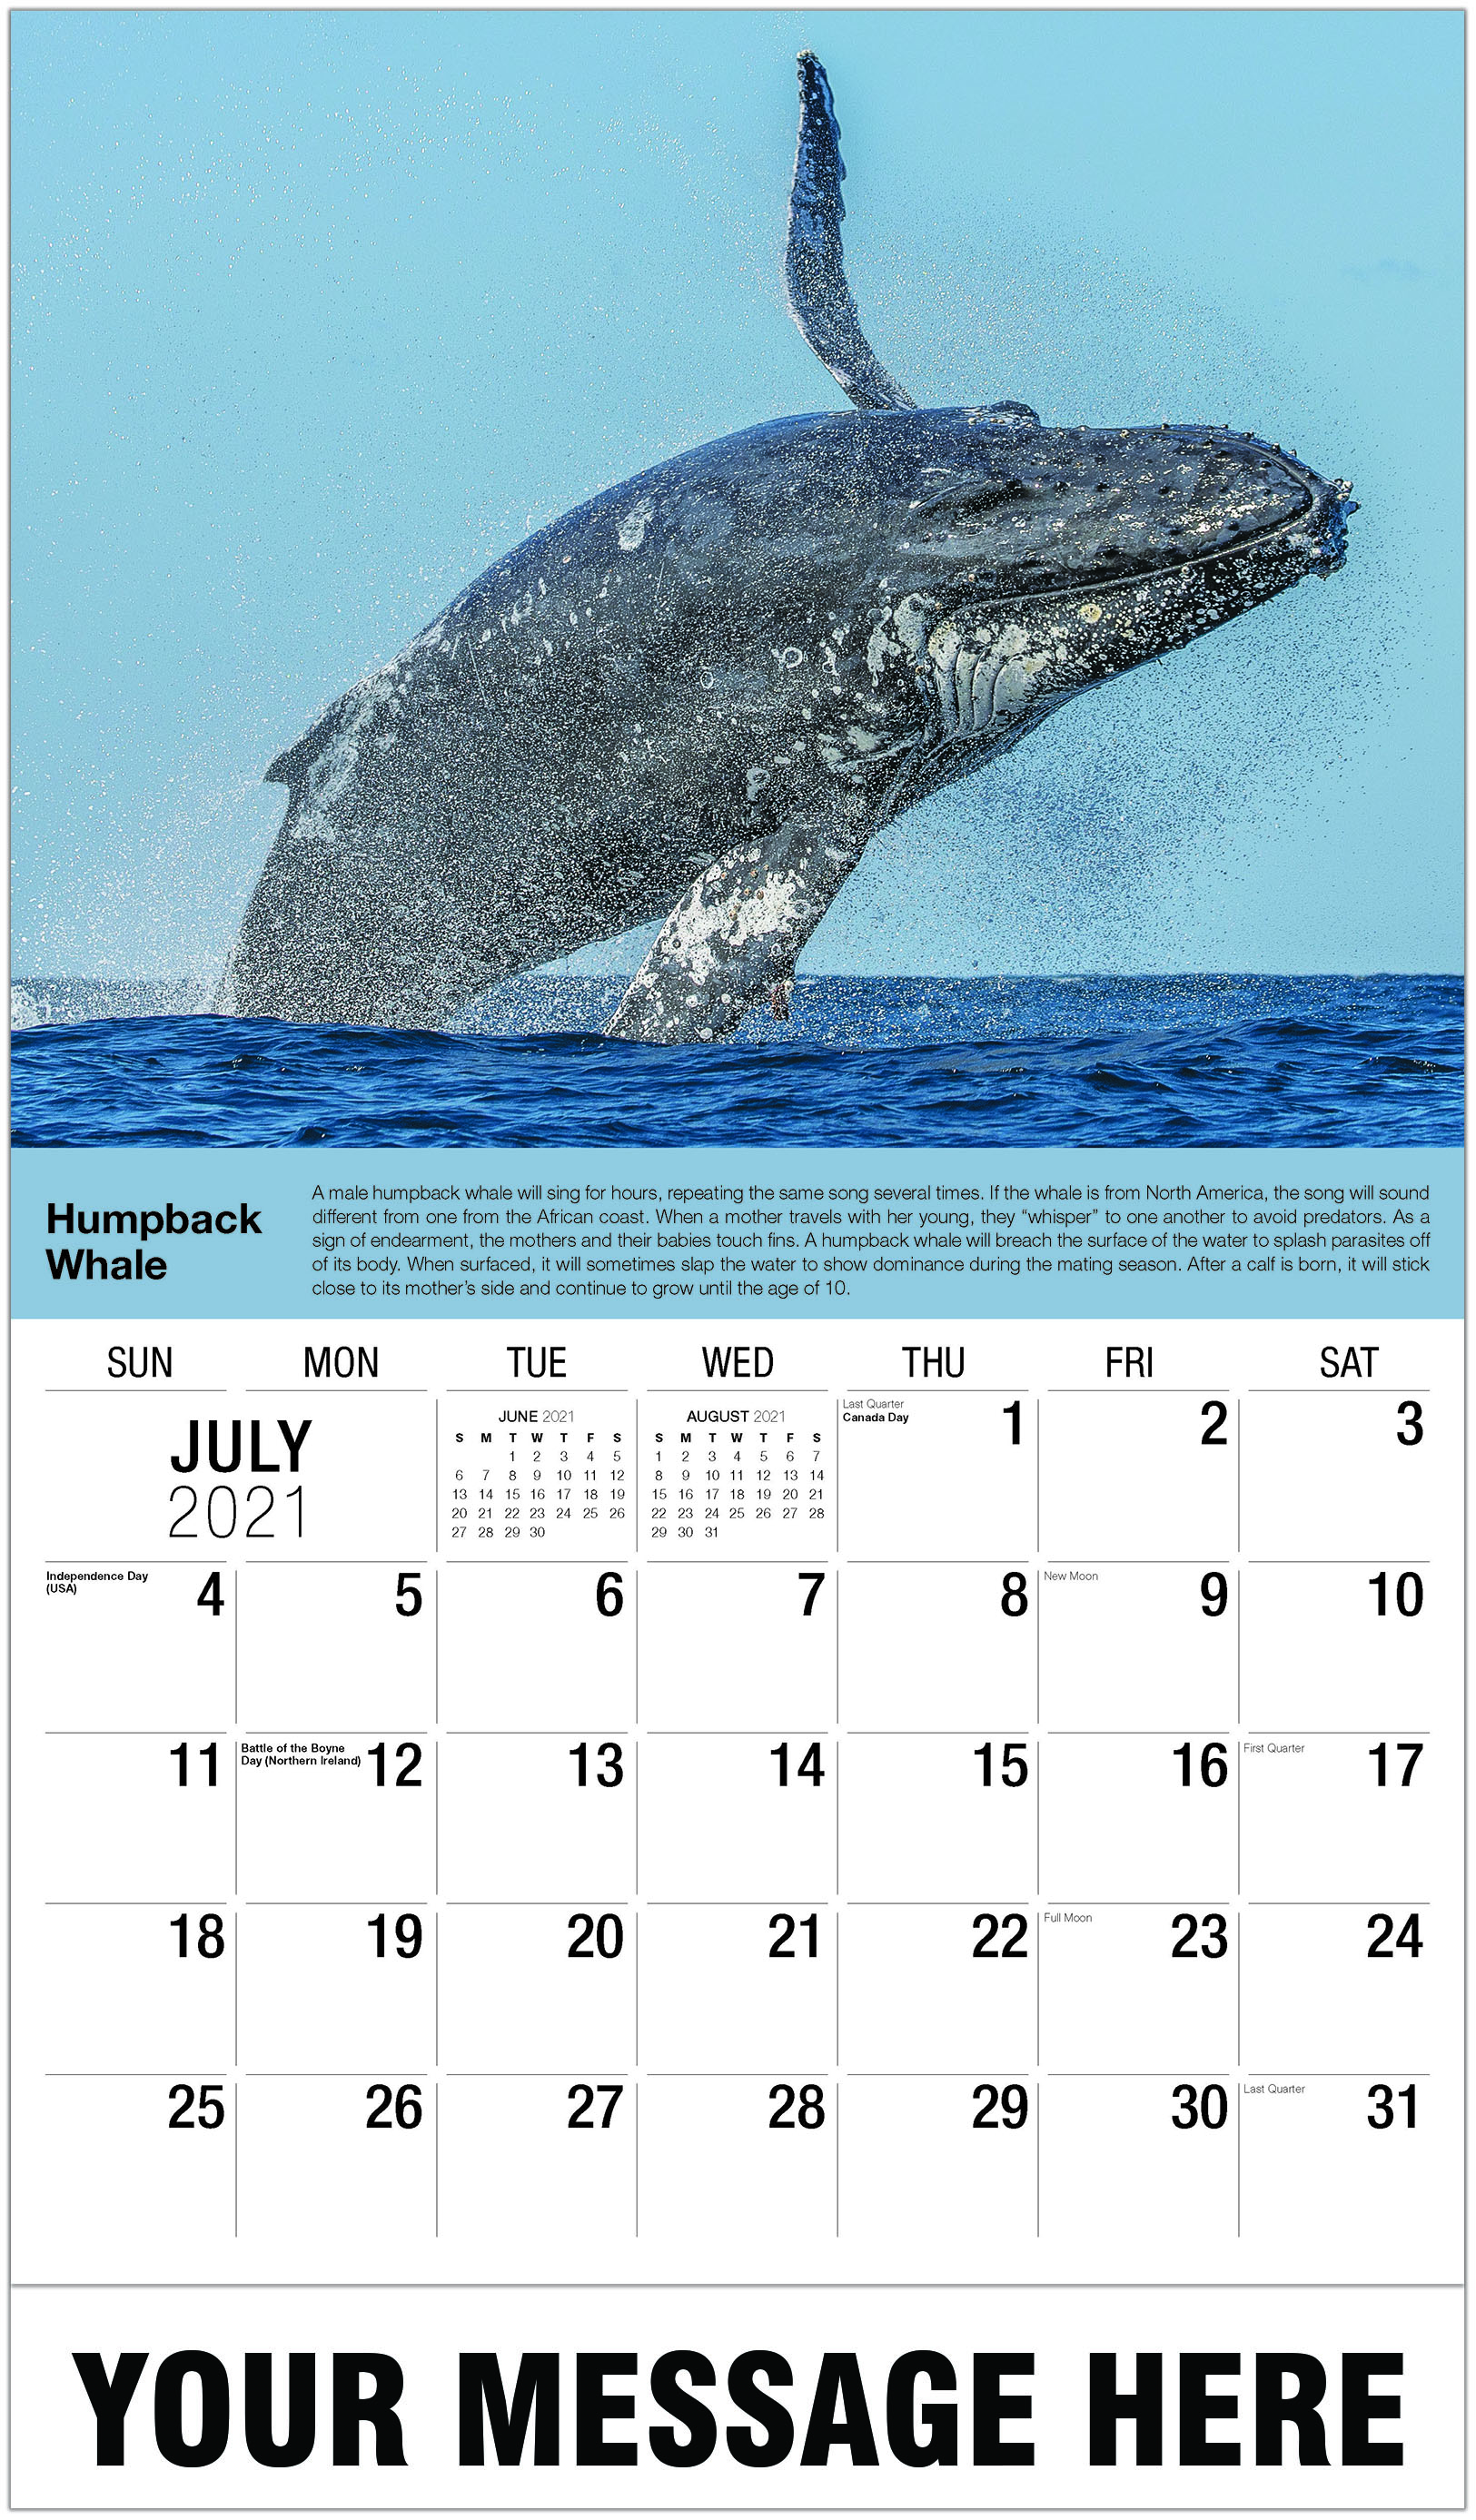 Humpback Whale - July - International Wildlife 2021 Promotional Calendar